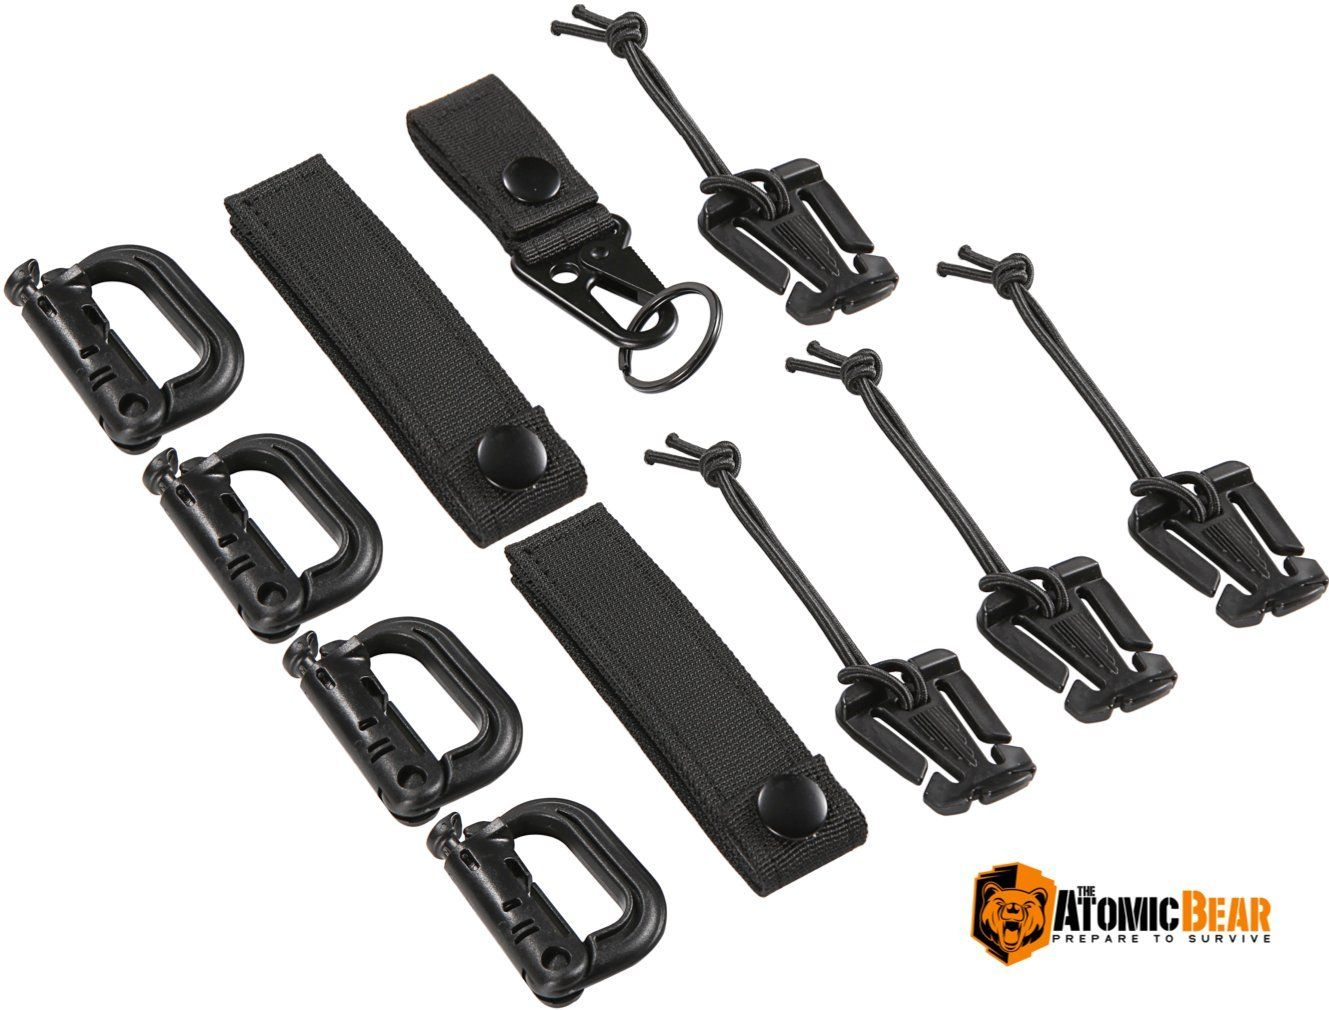 Tactical Gear Clip Strap for Molle Backpack Webbing D-Ring Grimlock Holders Kit